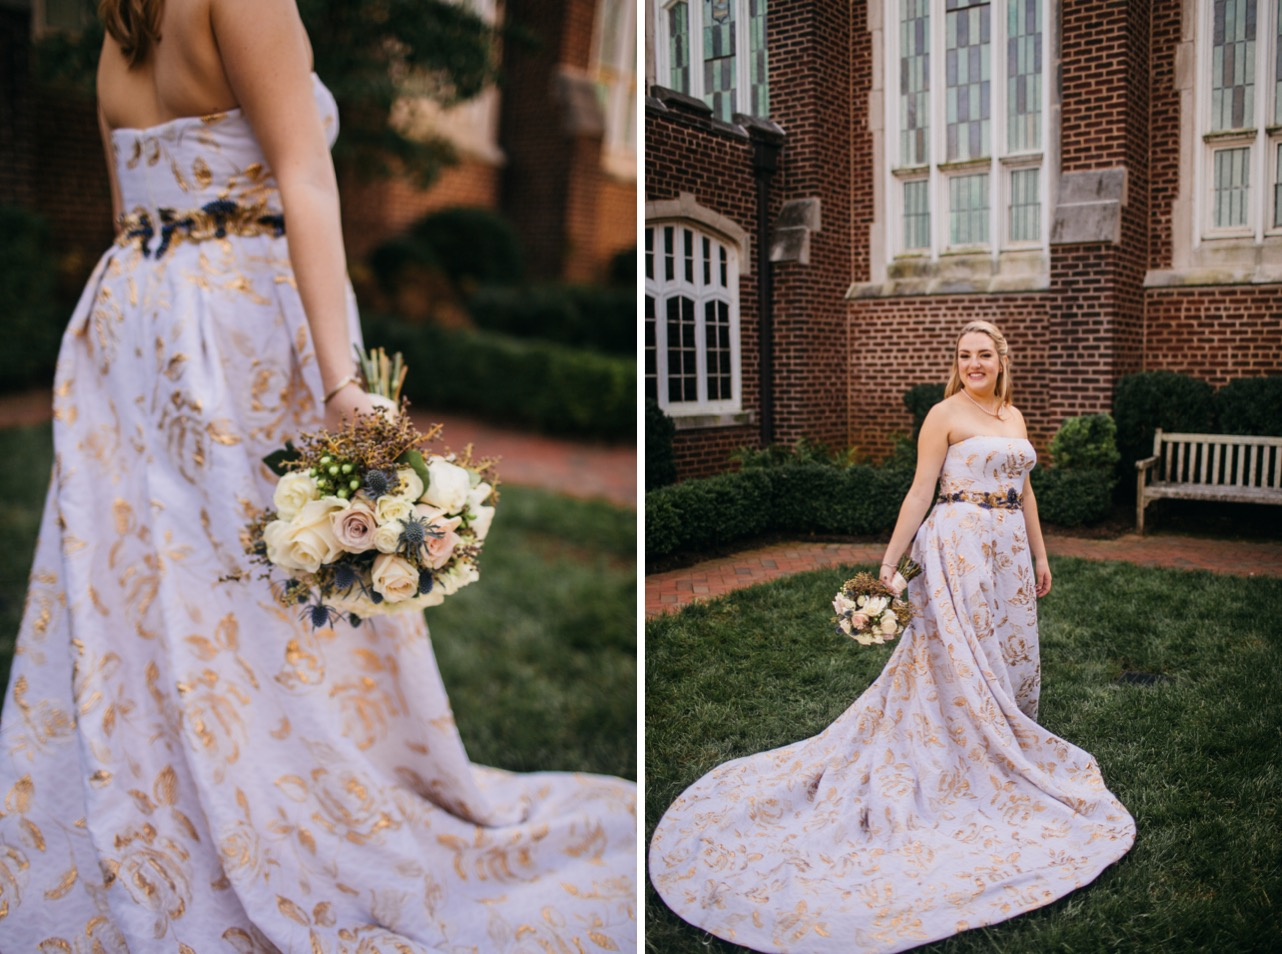 Details of the brides dress and bouquet are shown at her wedding at Hunter Museum. Bride looks back and smiles.